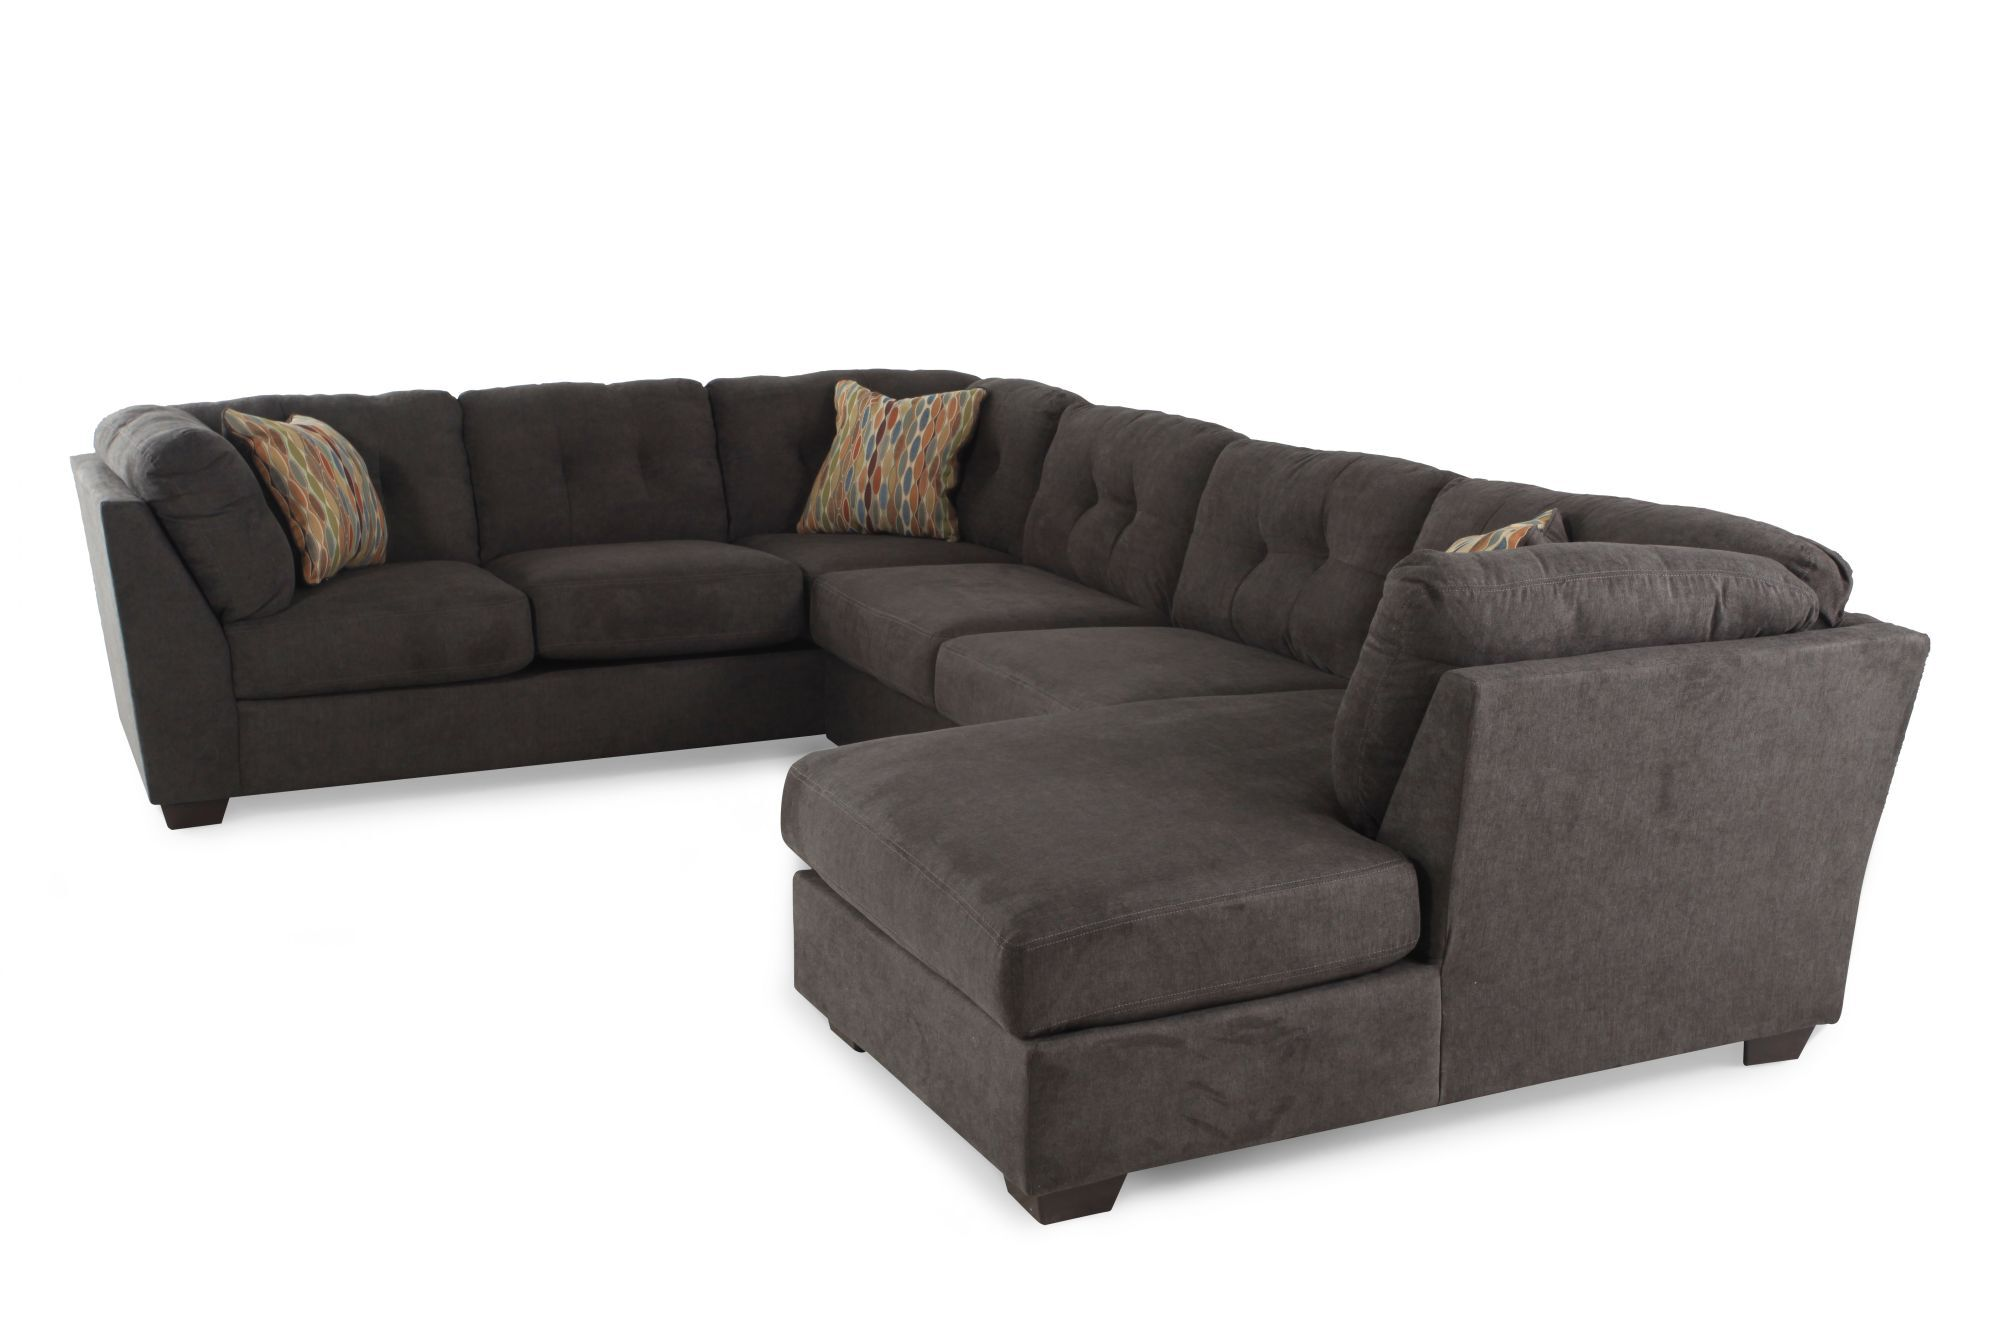 parker 2 piece sofa and loveseat in brown 1 sofala ave riverview nsw 2066 three microfiber sectional chocolate